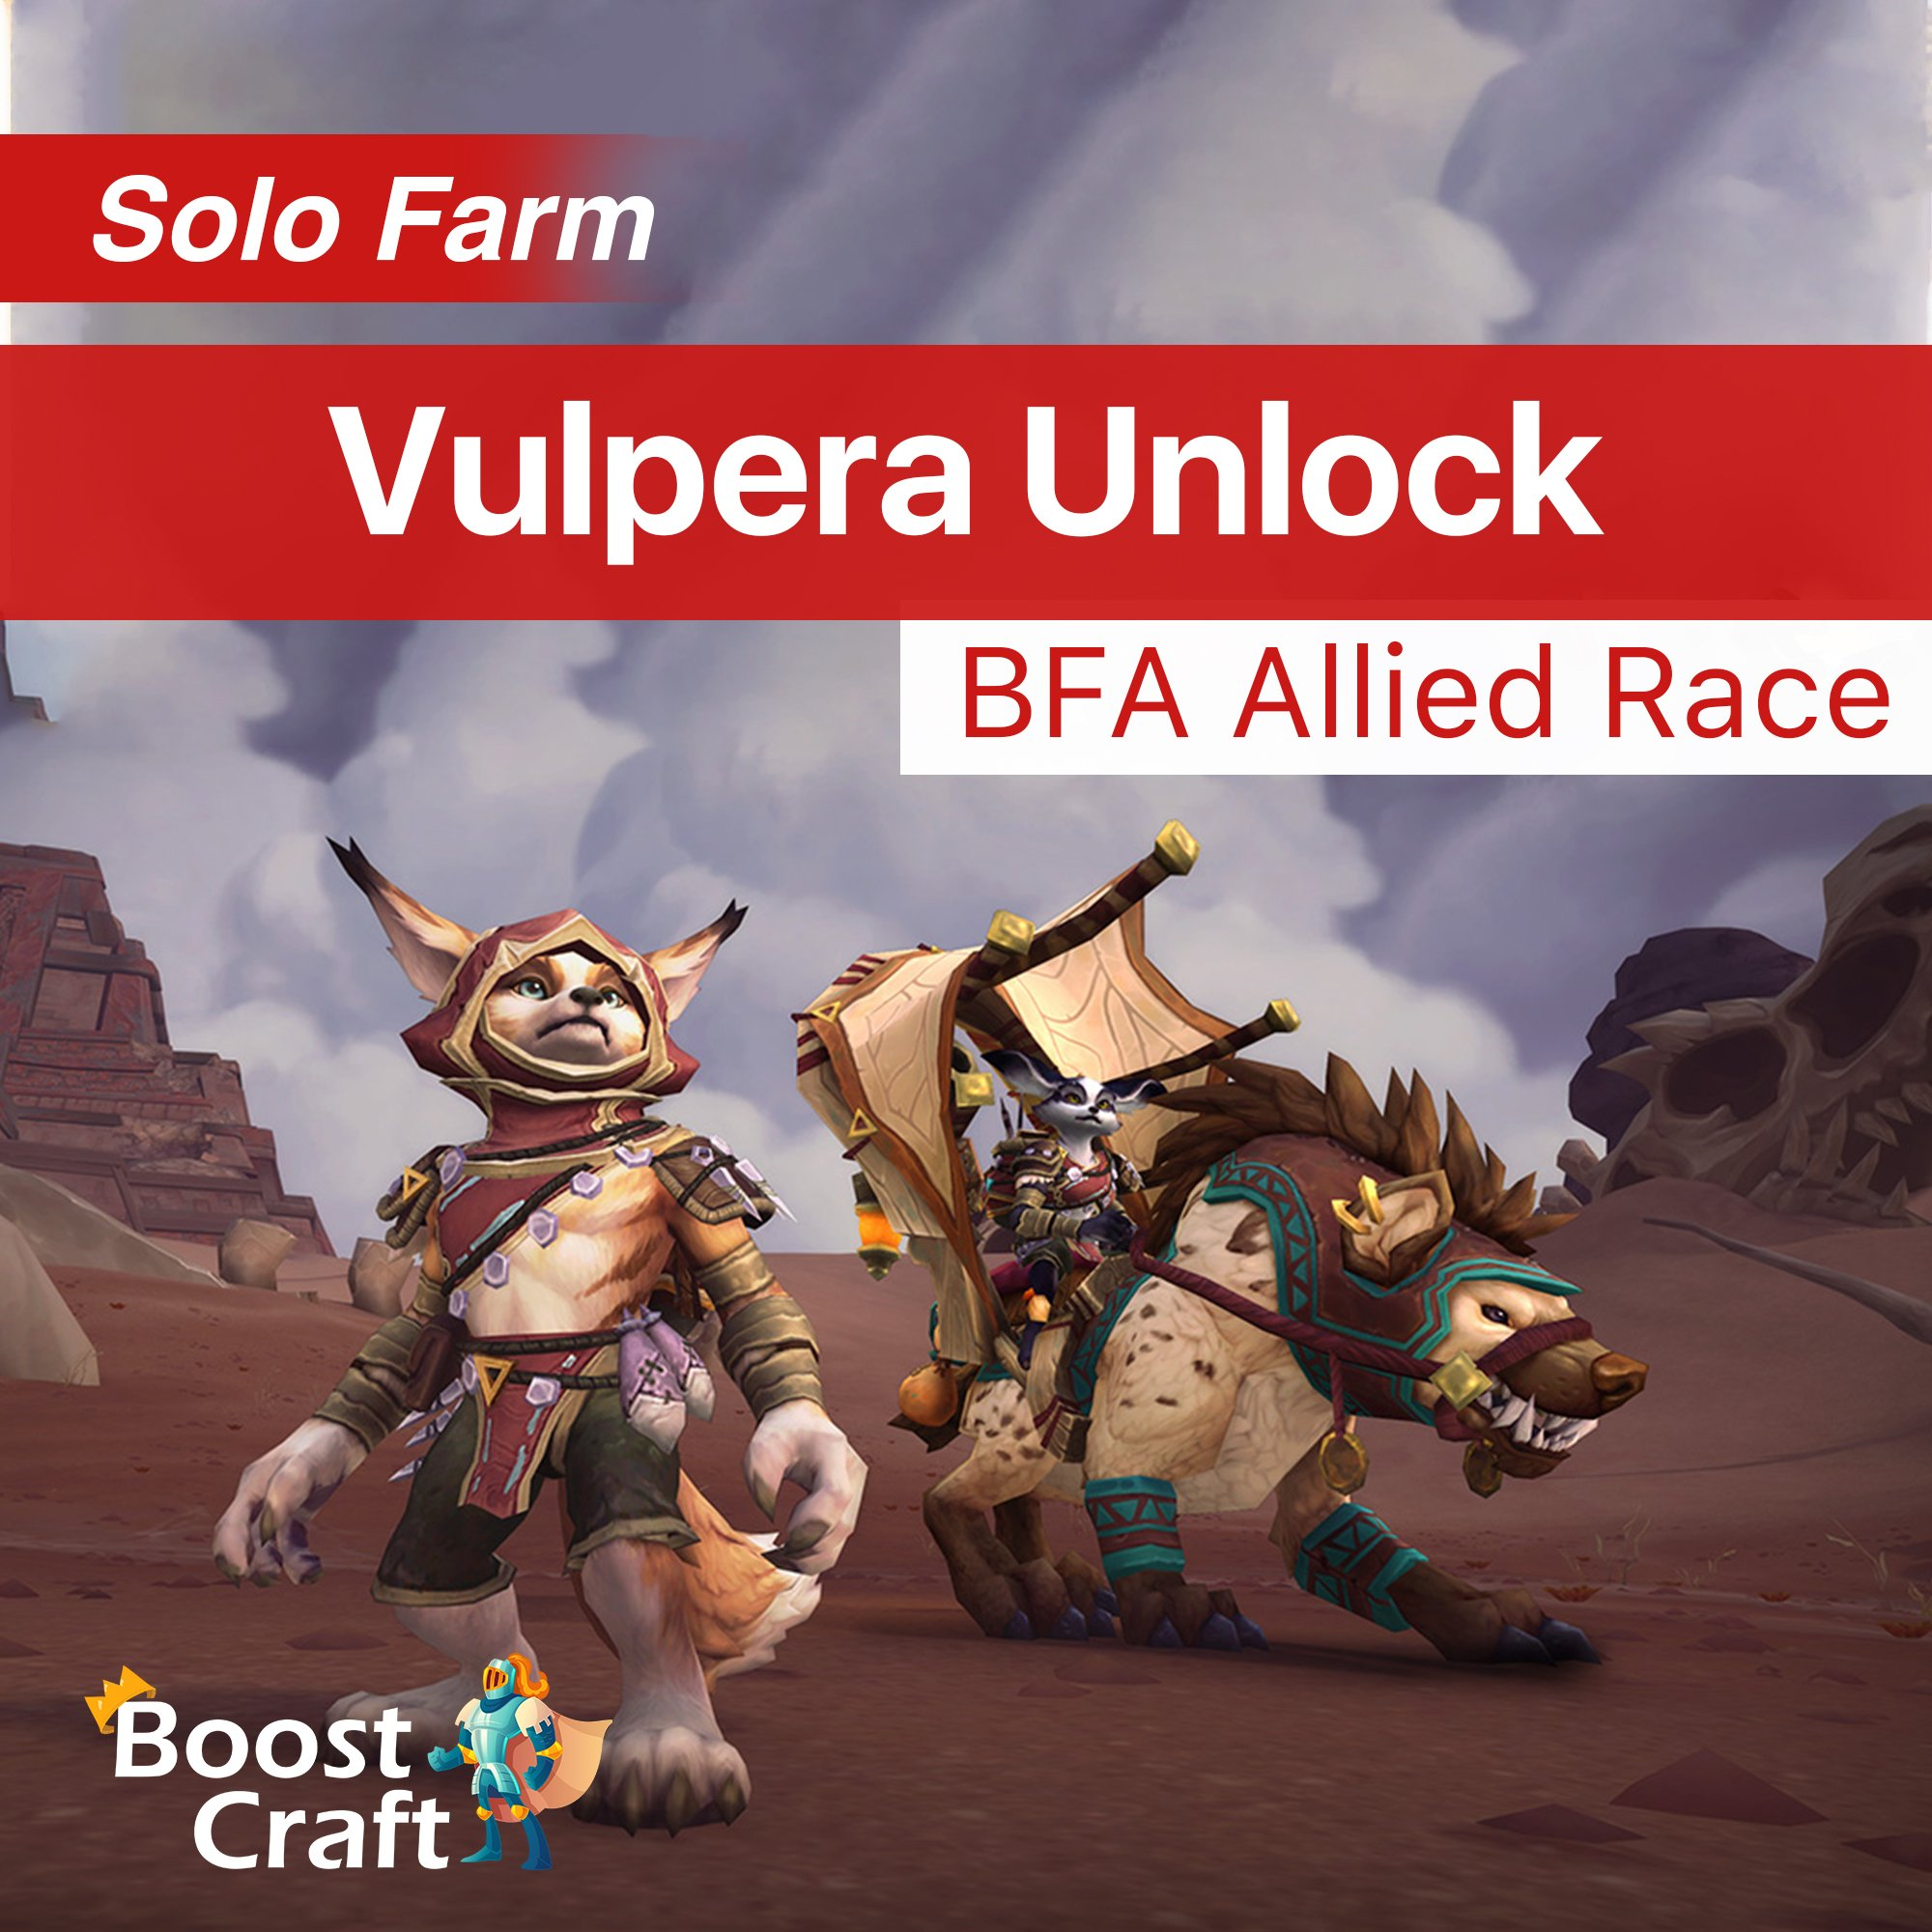 Vulpera race Unlock – BFA Allied Race